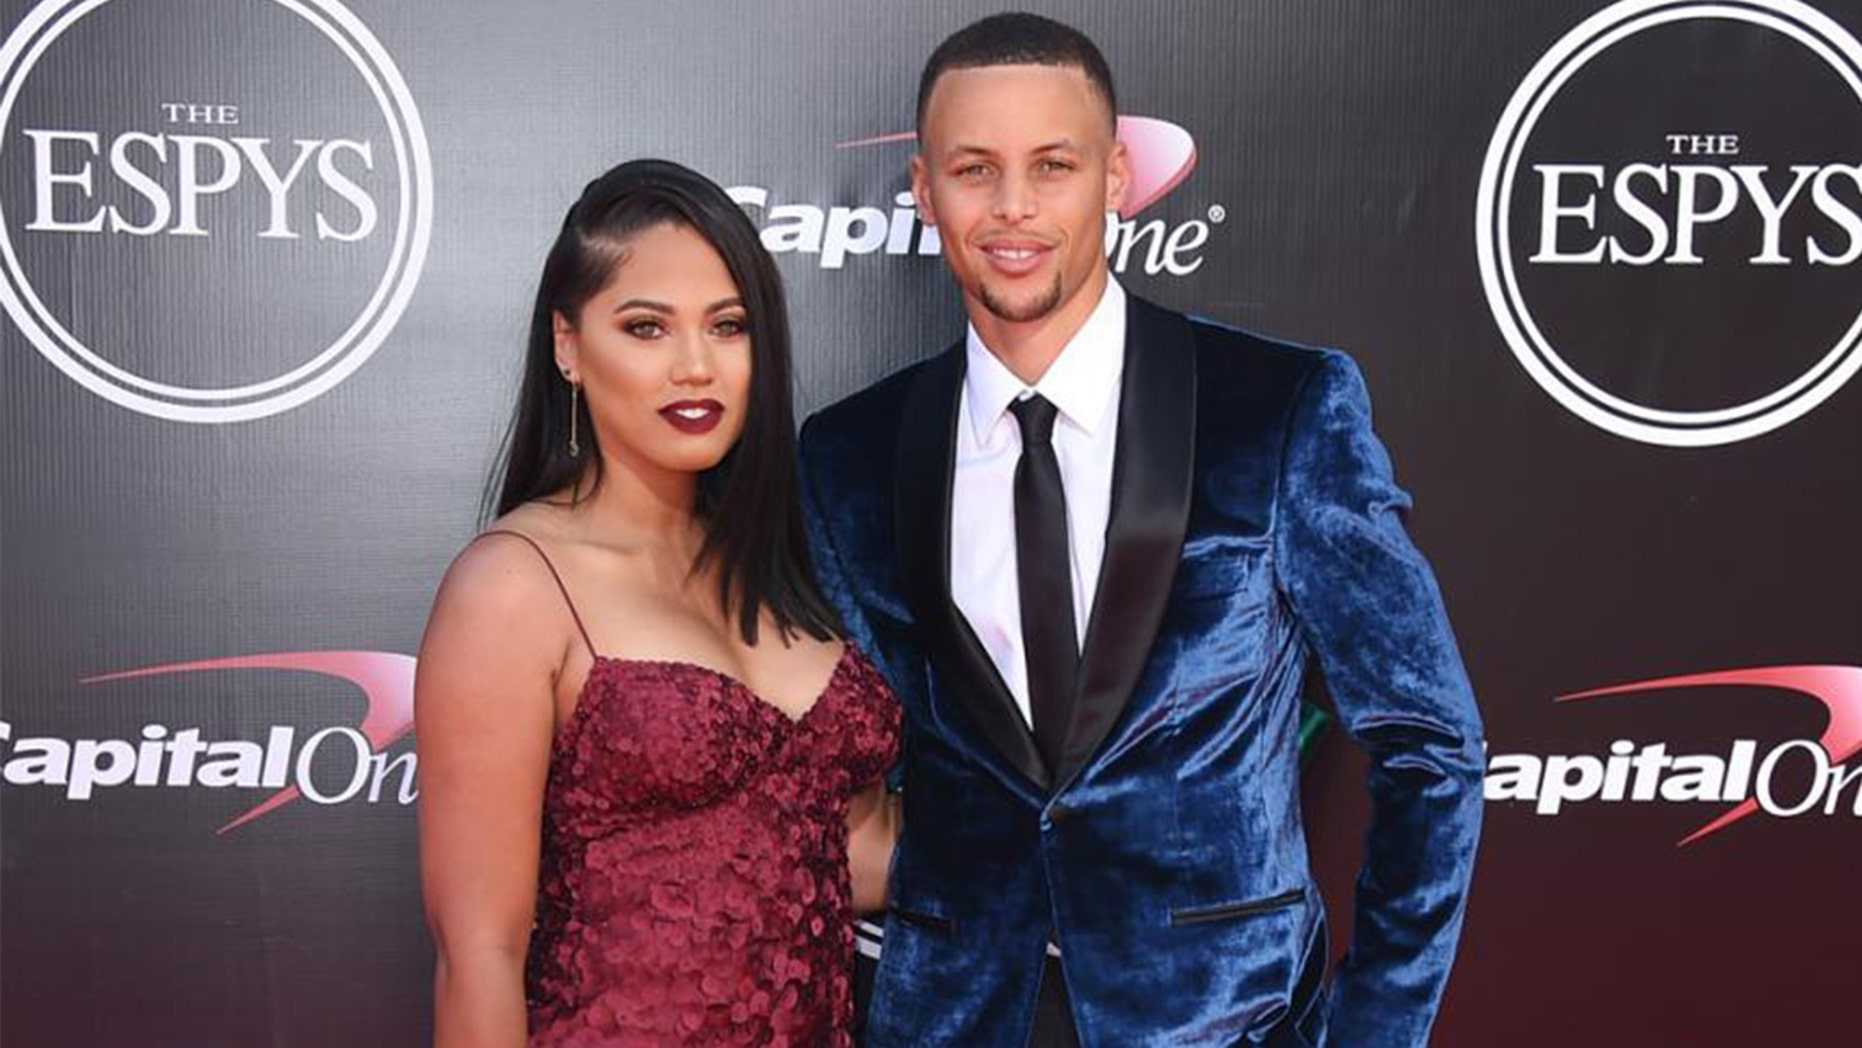 Forum on this topic: Debbie Dickinson, ayesha-curry/